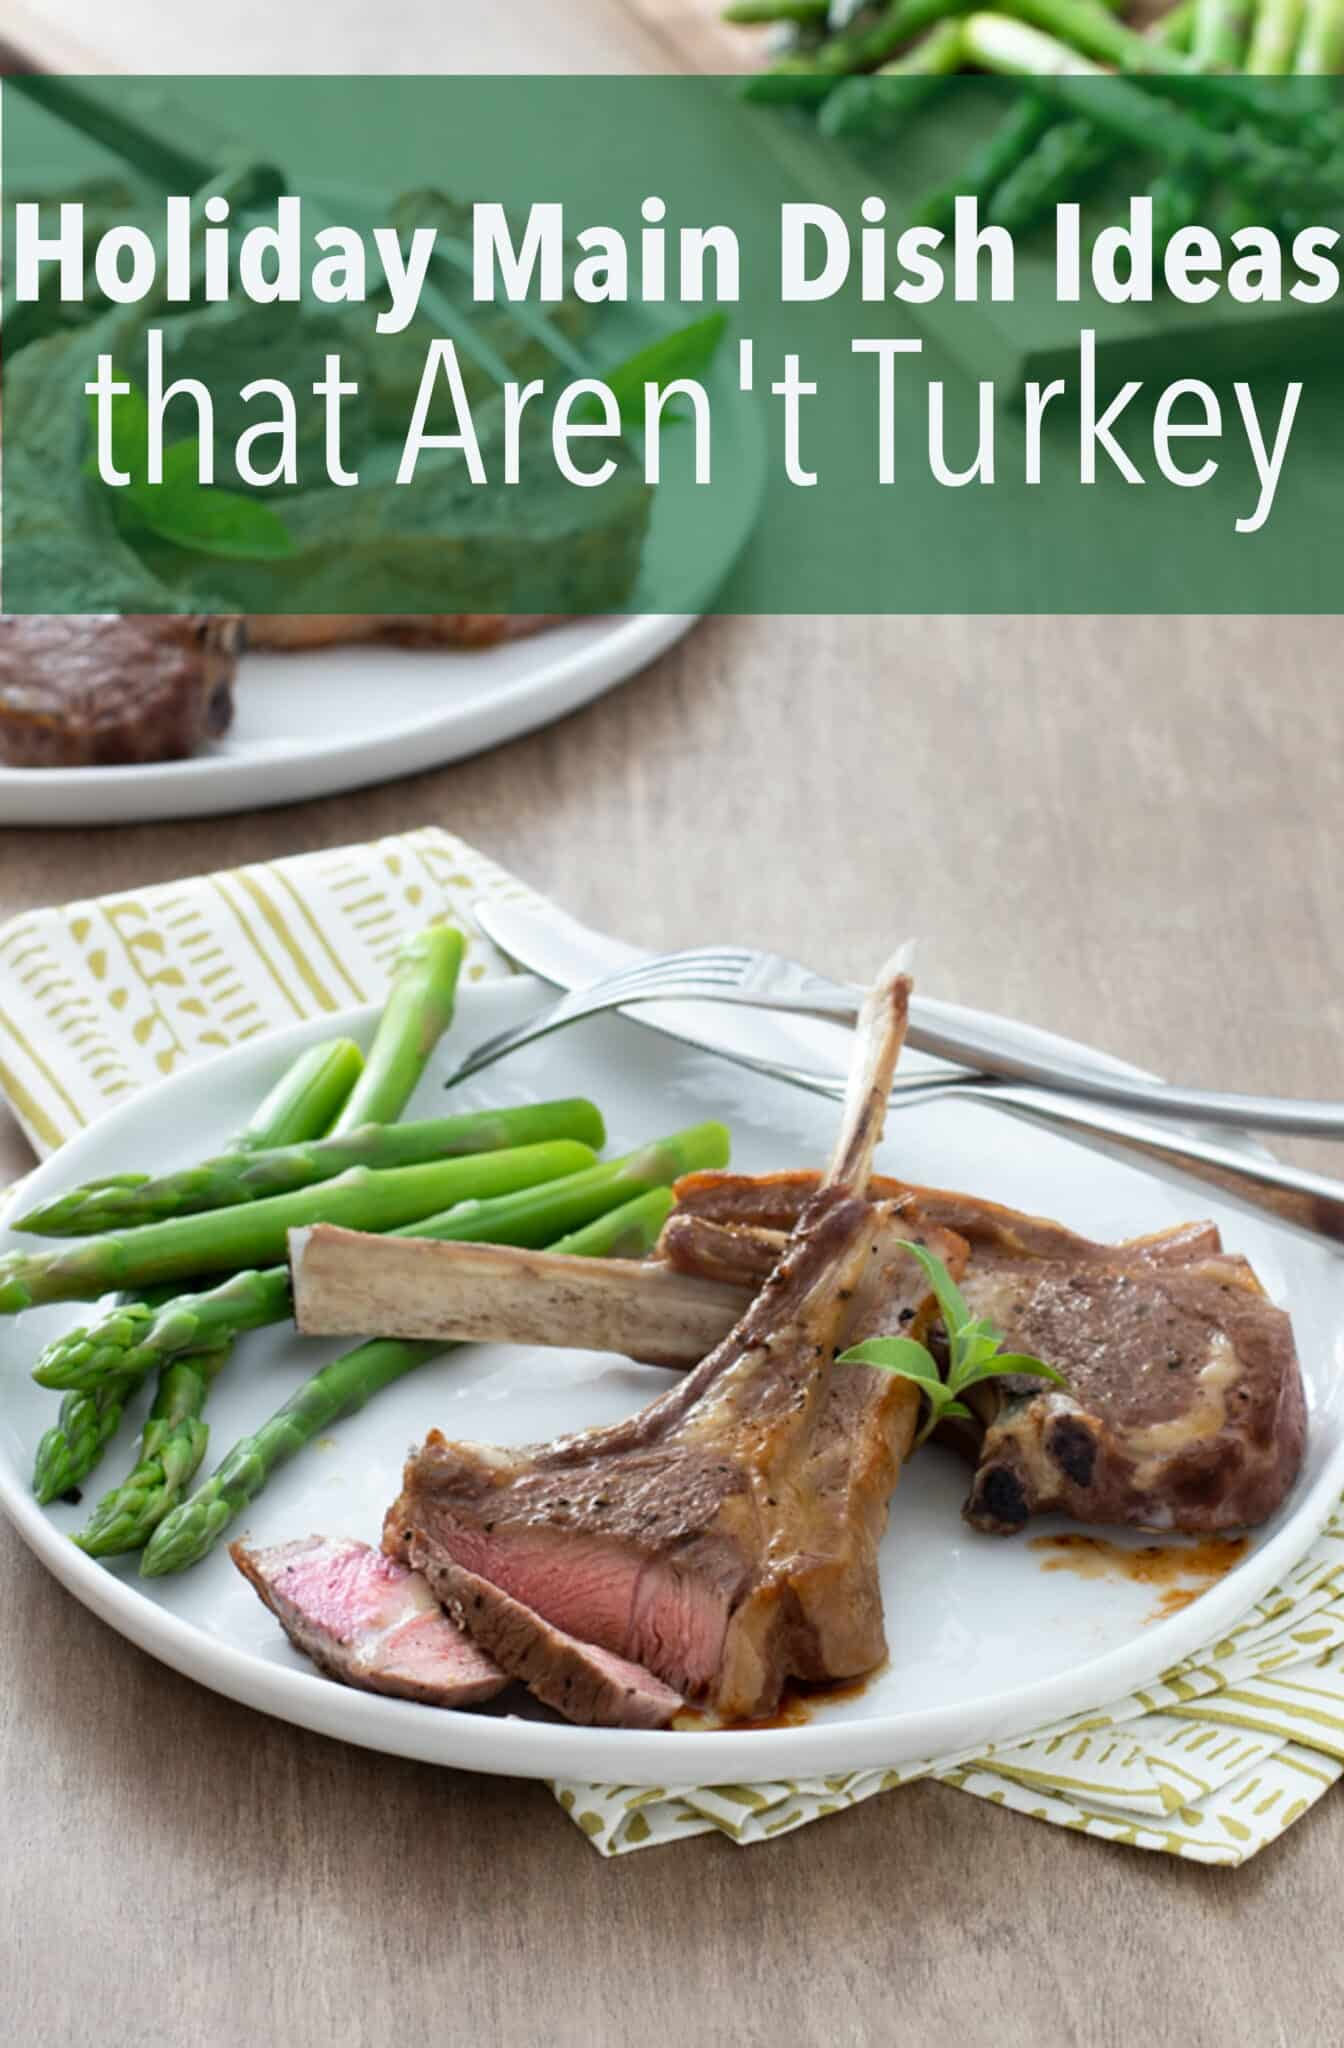 Make something that your guests will drool over this Holiday season.  These meaty main dishrecipes certainlyaren't dry turkey, and they're impressive and easy. #ham #chicken #lamb #shrimp #maindish #dinner #dinnerrecipe #thanksgiving #christmas